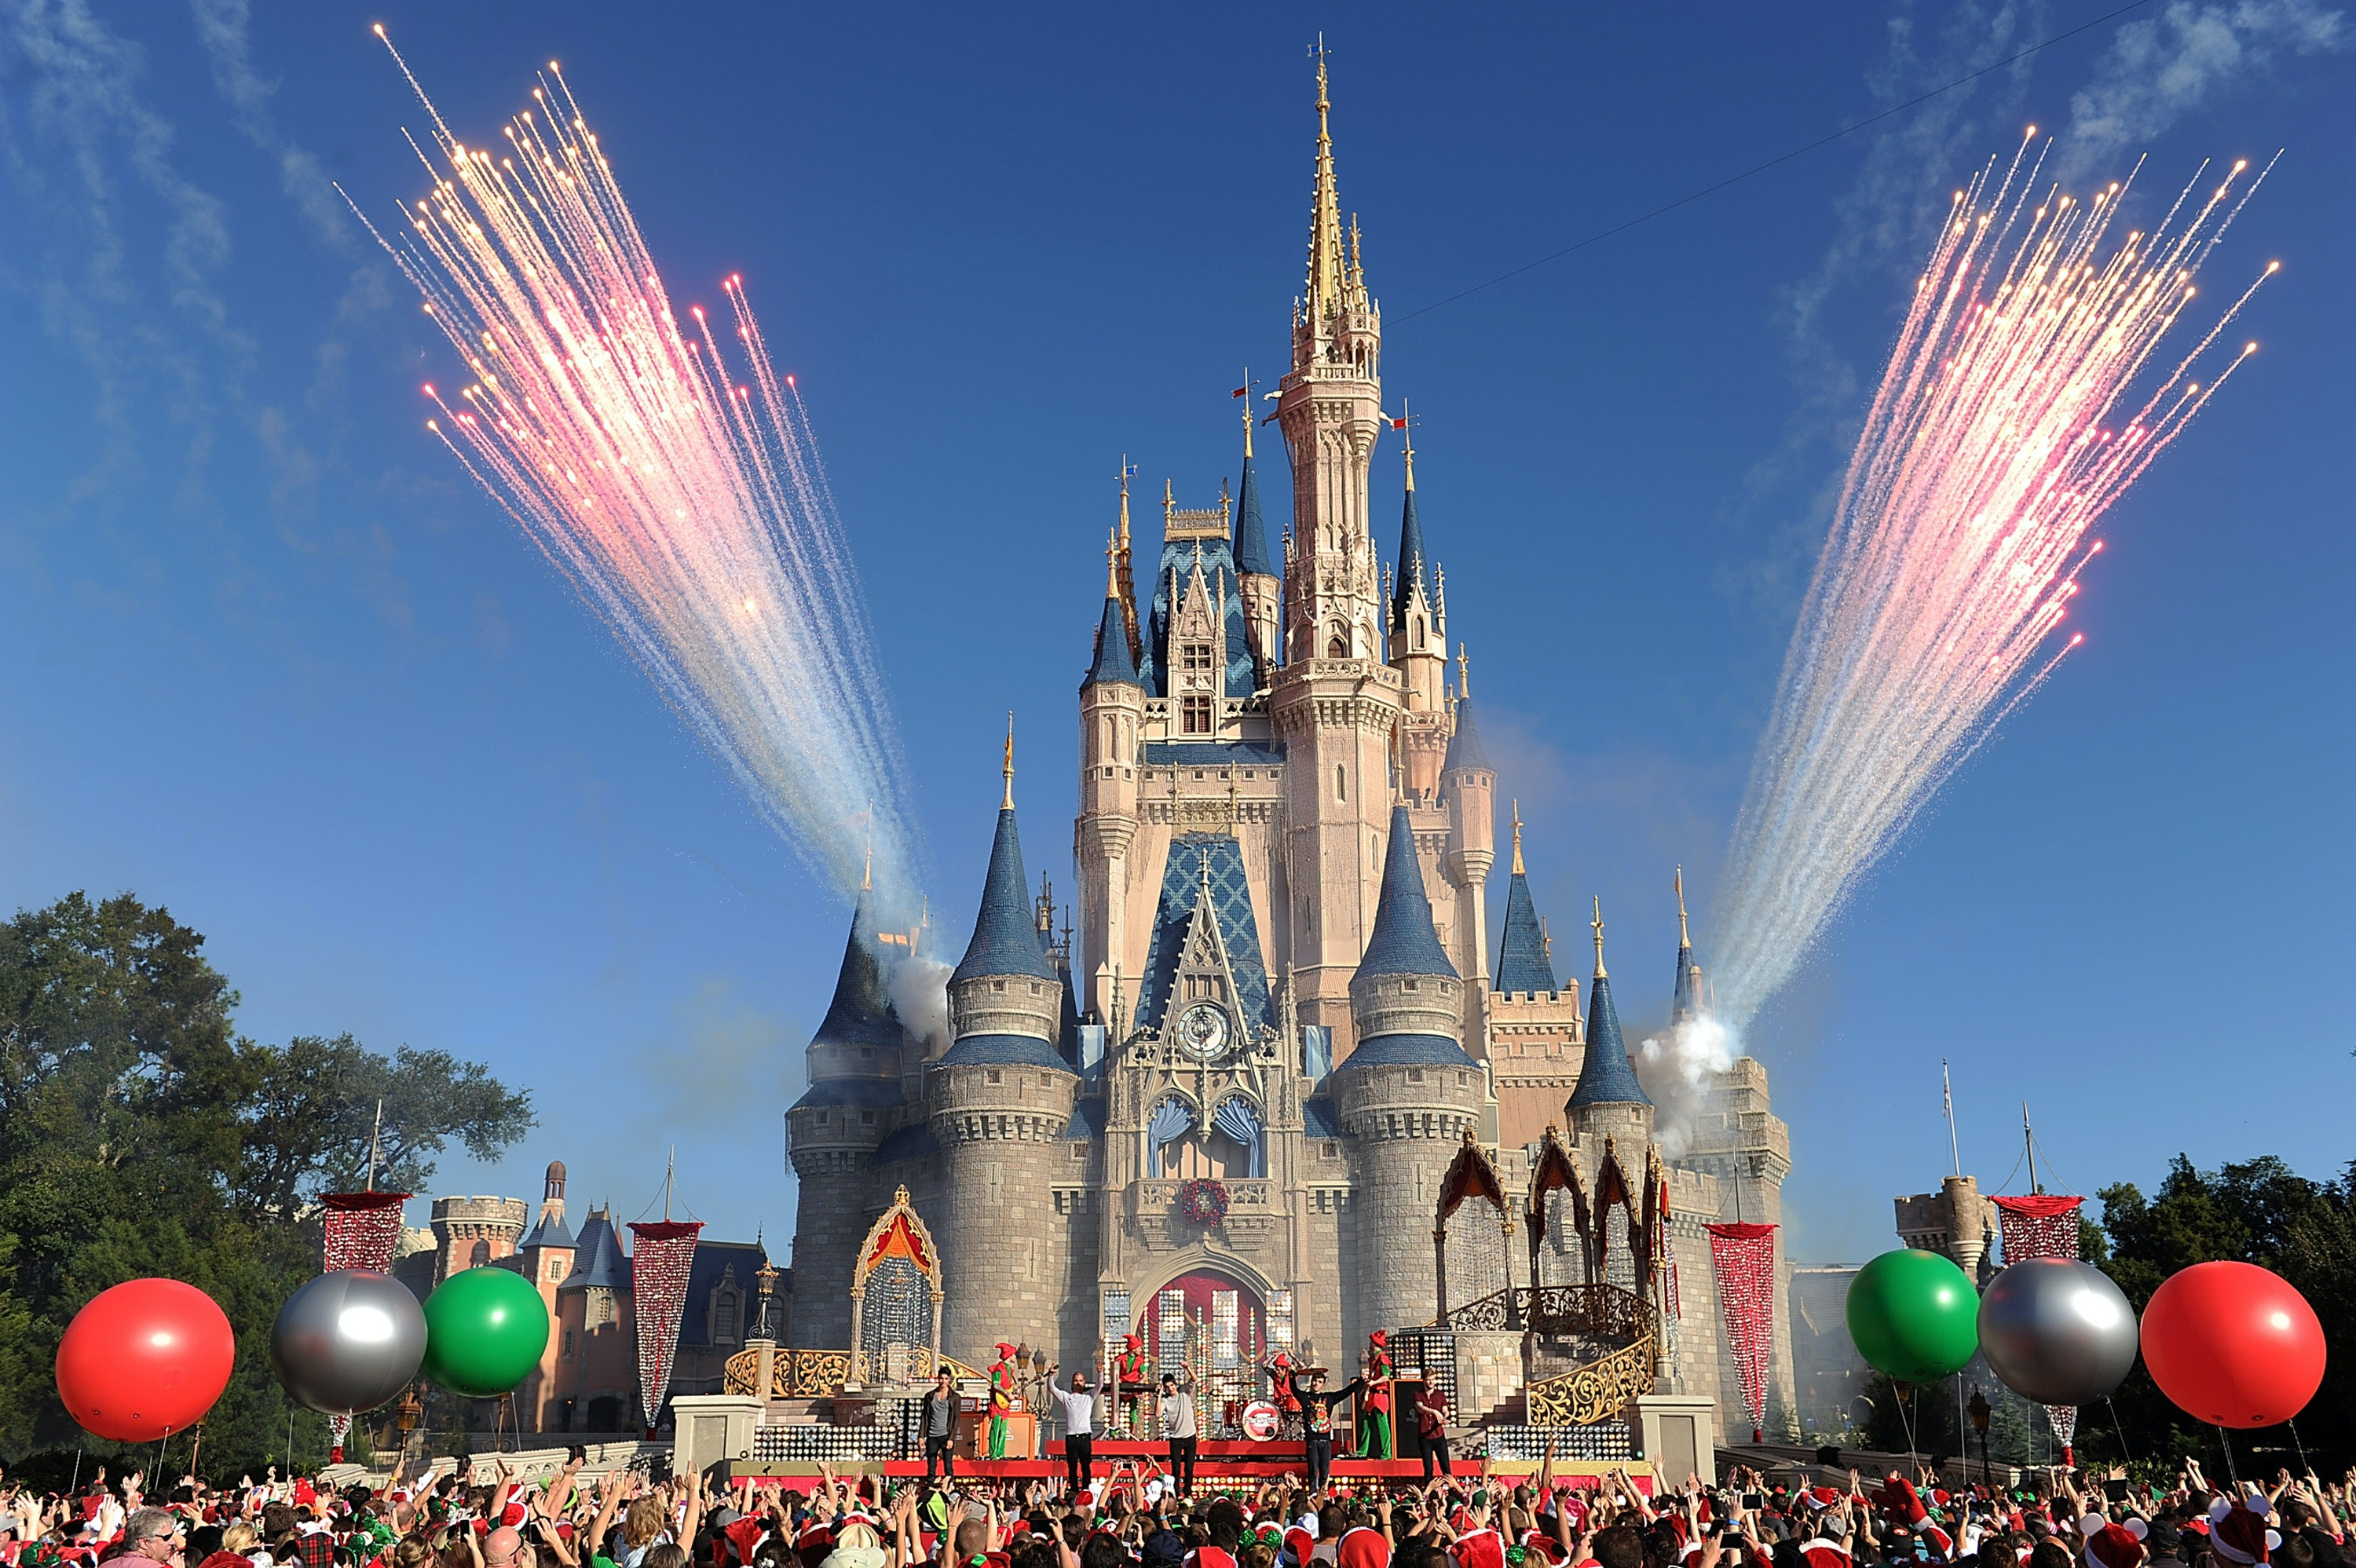 Alcohol At Disney World Will Now Be Served At All